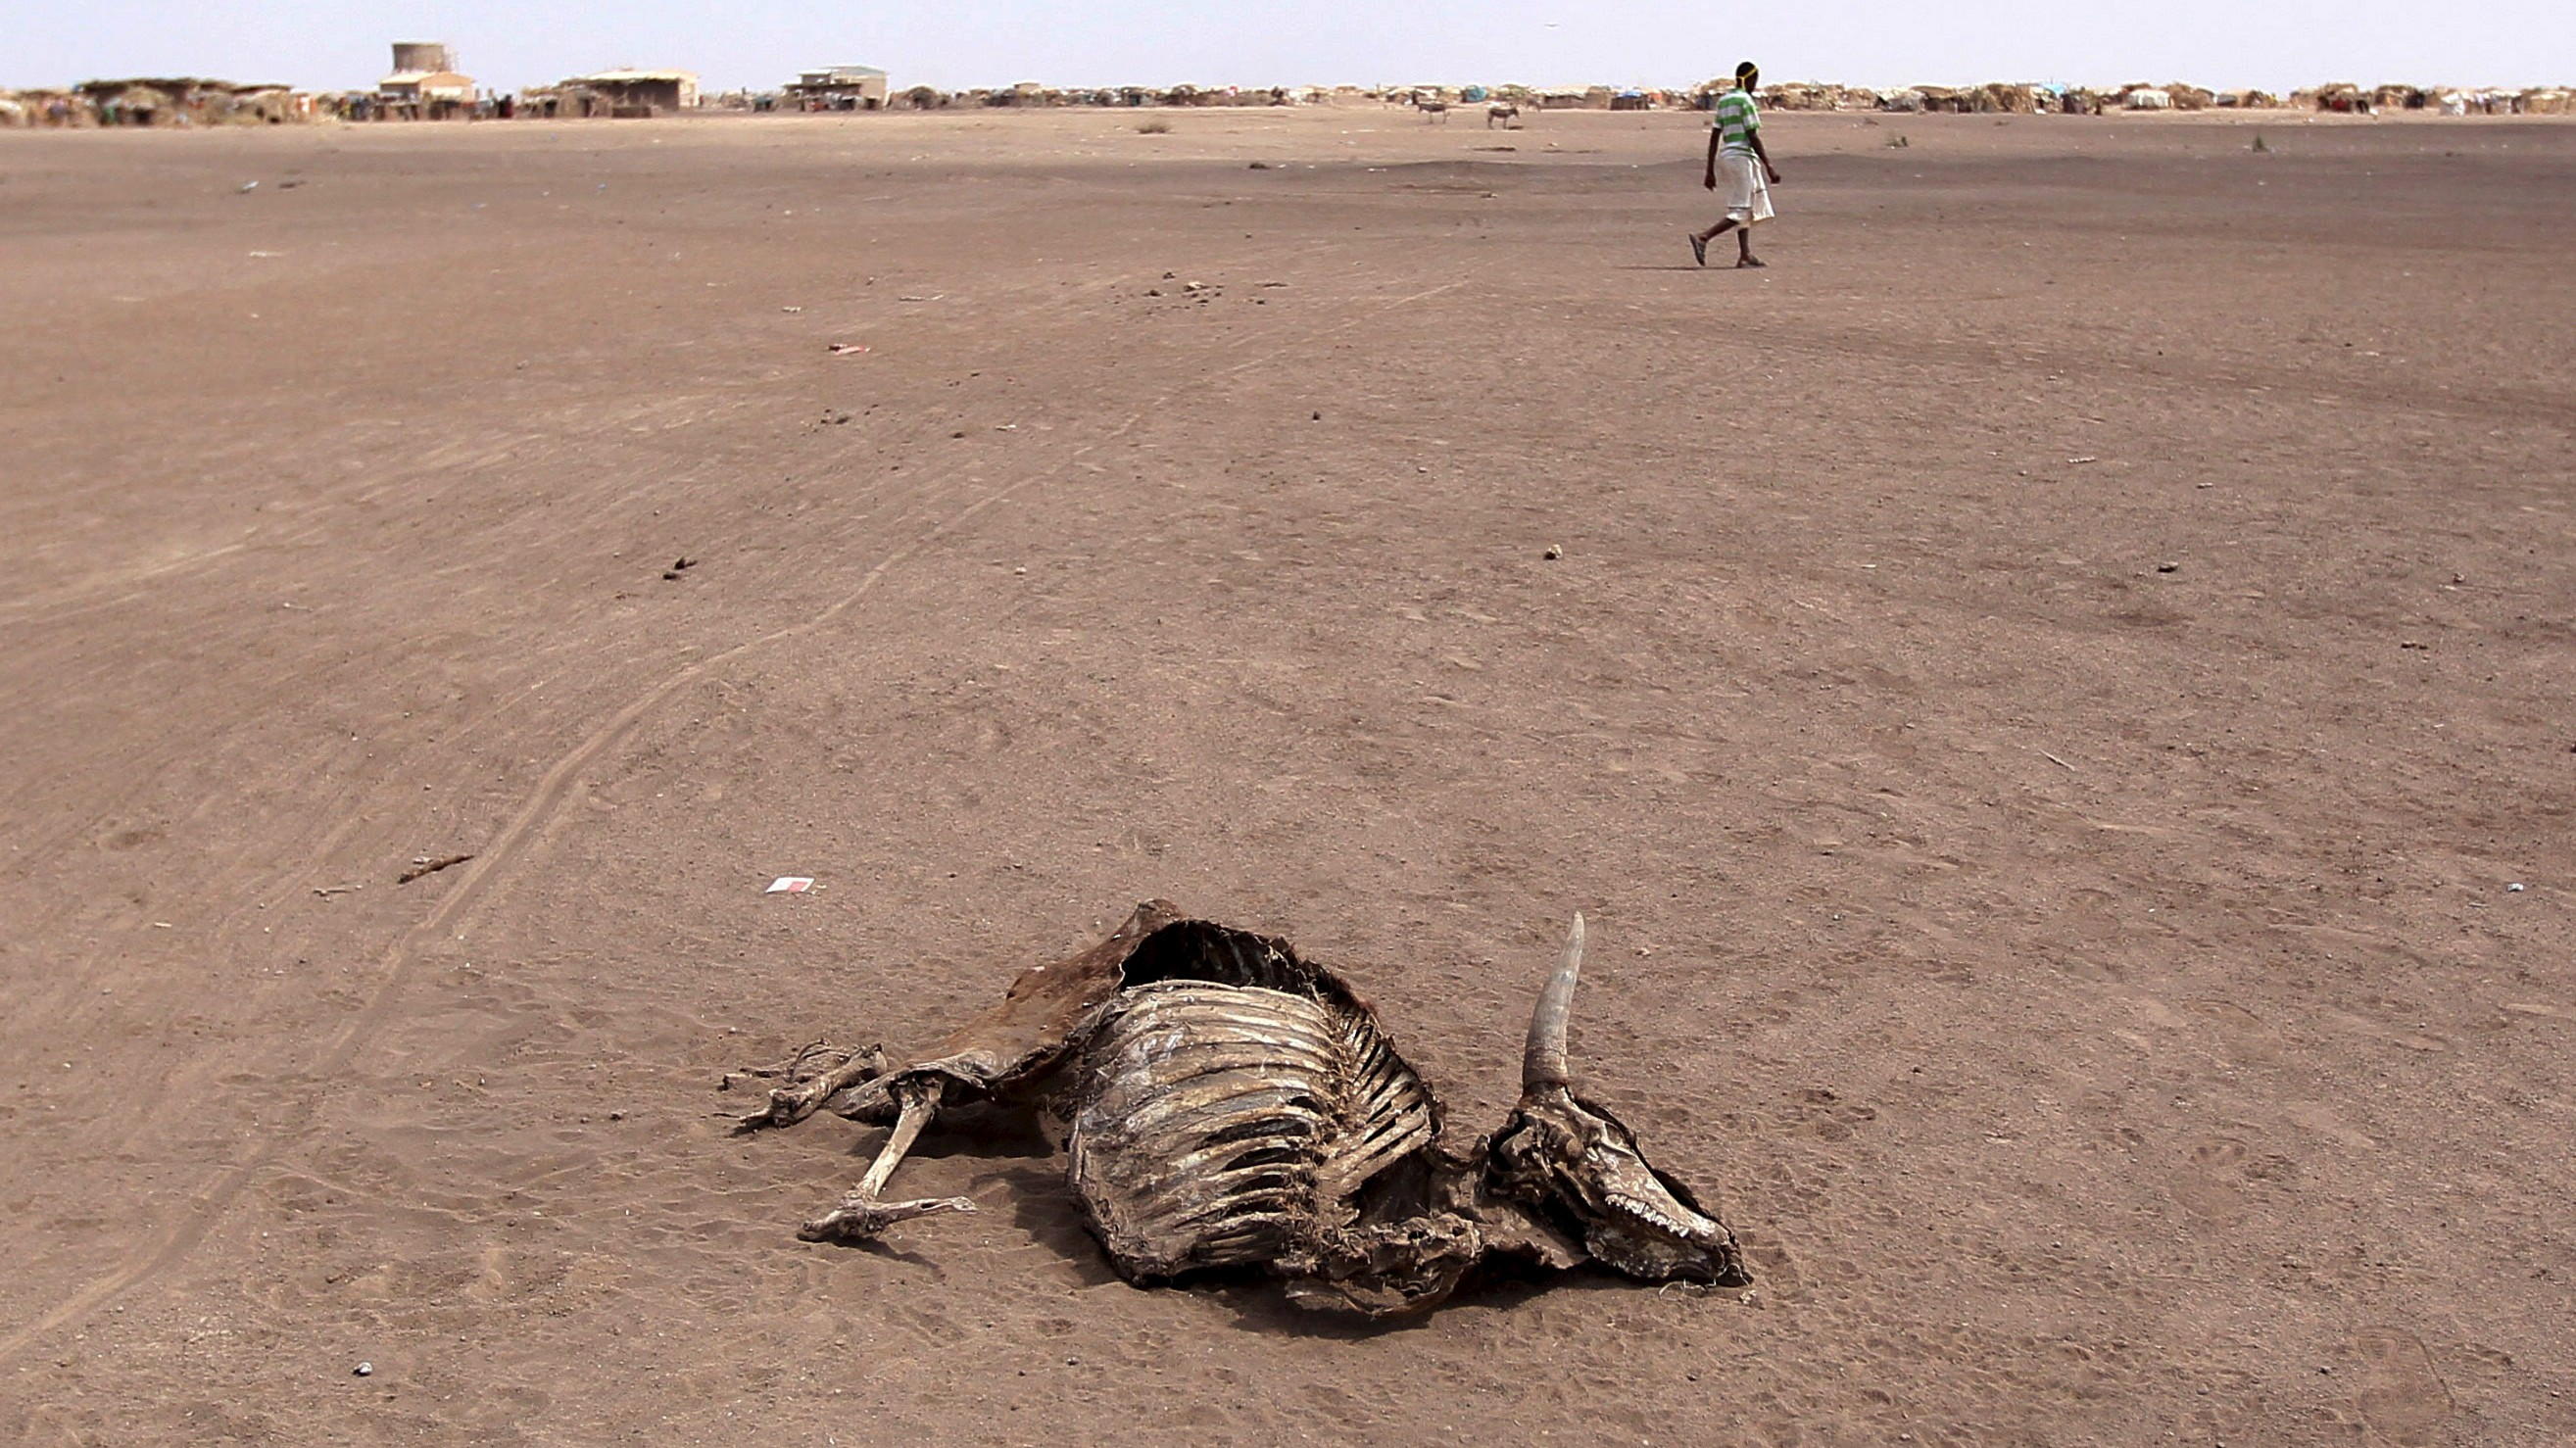 A man walks near a carcass of a dead cow in Farado Kebele, one of drought stricken Somali region in Ethiopia, January 26, 2016. The drought relief effort in Ethiopia needs about $500 million to fund programmes beyond the end of April to support 10.2 million people facing critical food shortages this year, the U.N. World Food Programme said on Thursday. Picture taken January 26, 2016. REUTERS/Tiksa Negeri - RTX24DMG